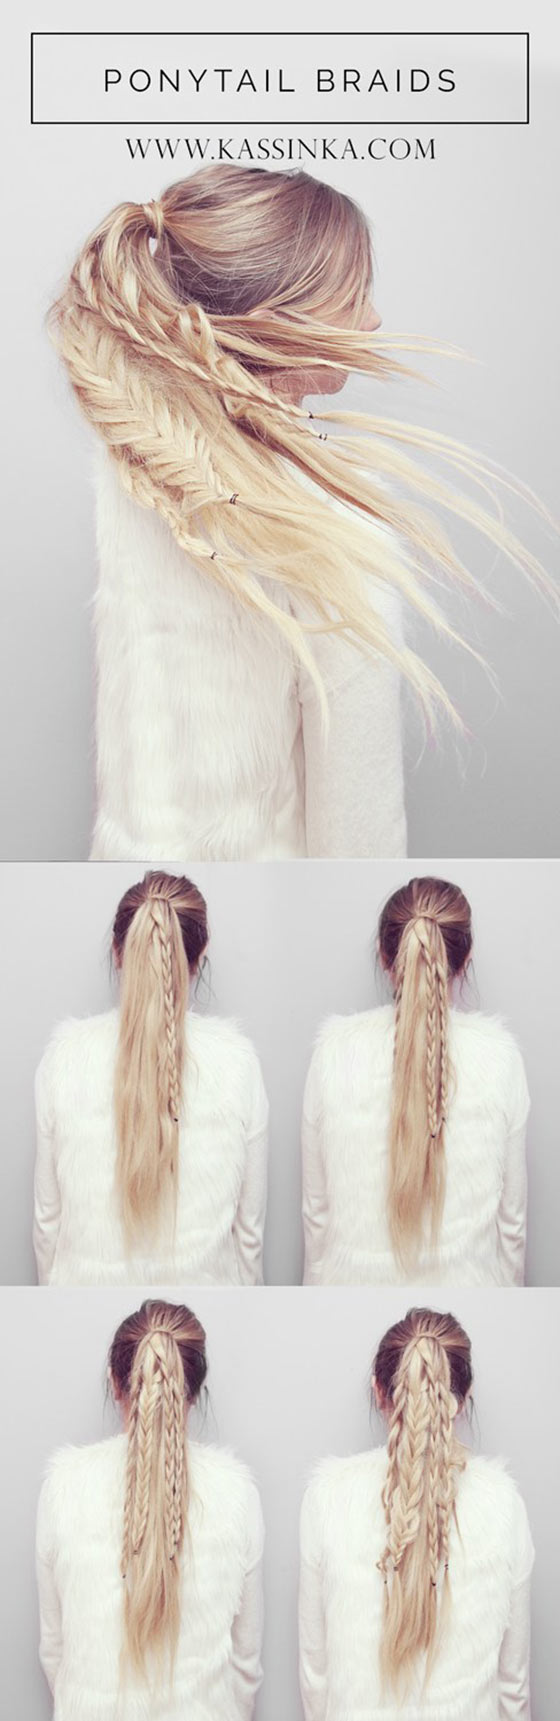 Ponytail-Braids